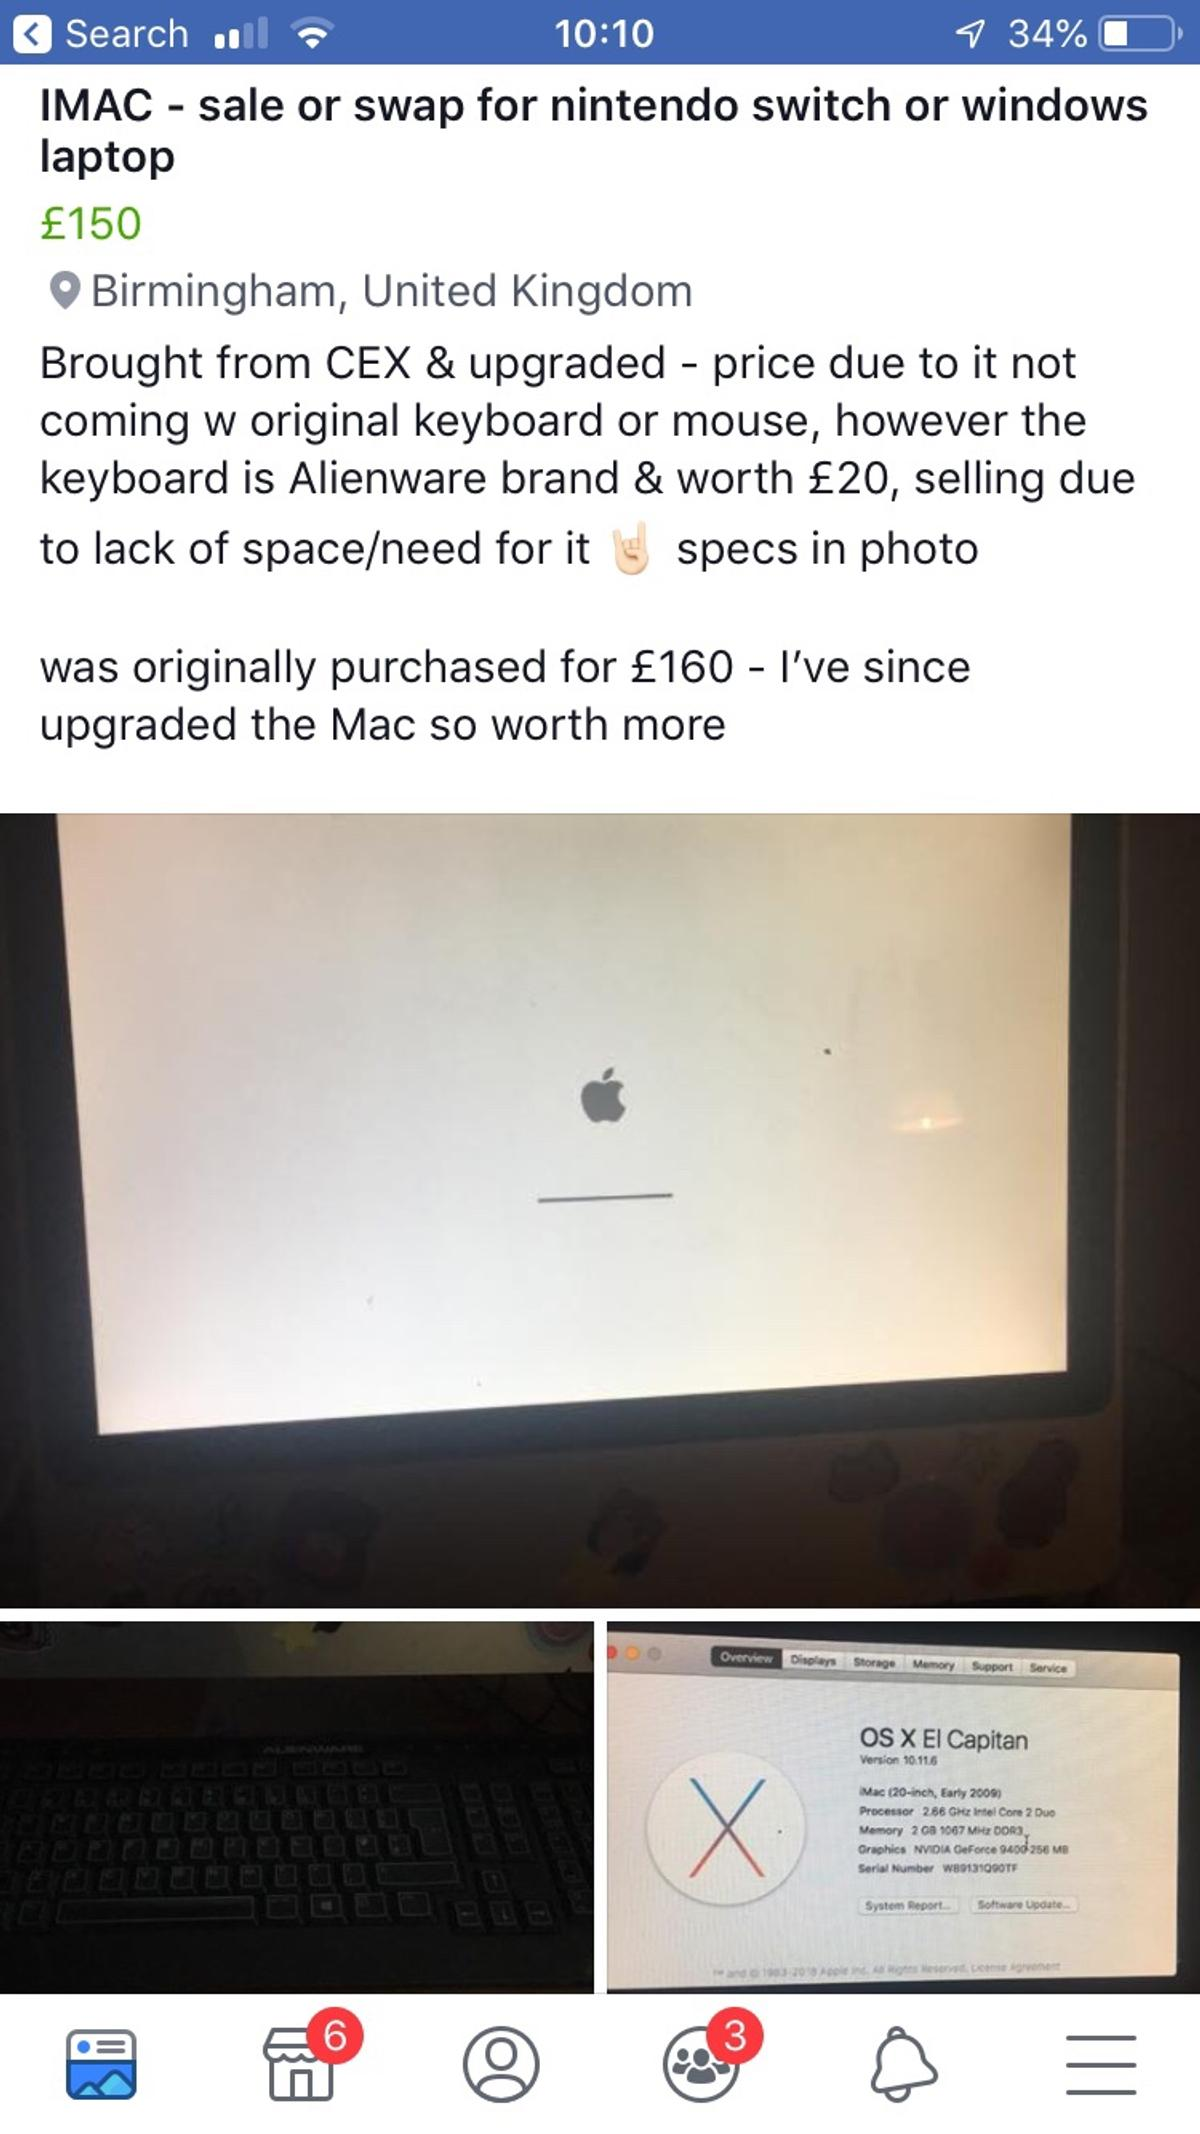 OS X EL CAPTAIN IMAC - SALE OR SWAP in B23 Birmingham for £150 00